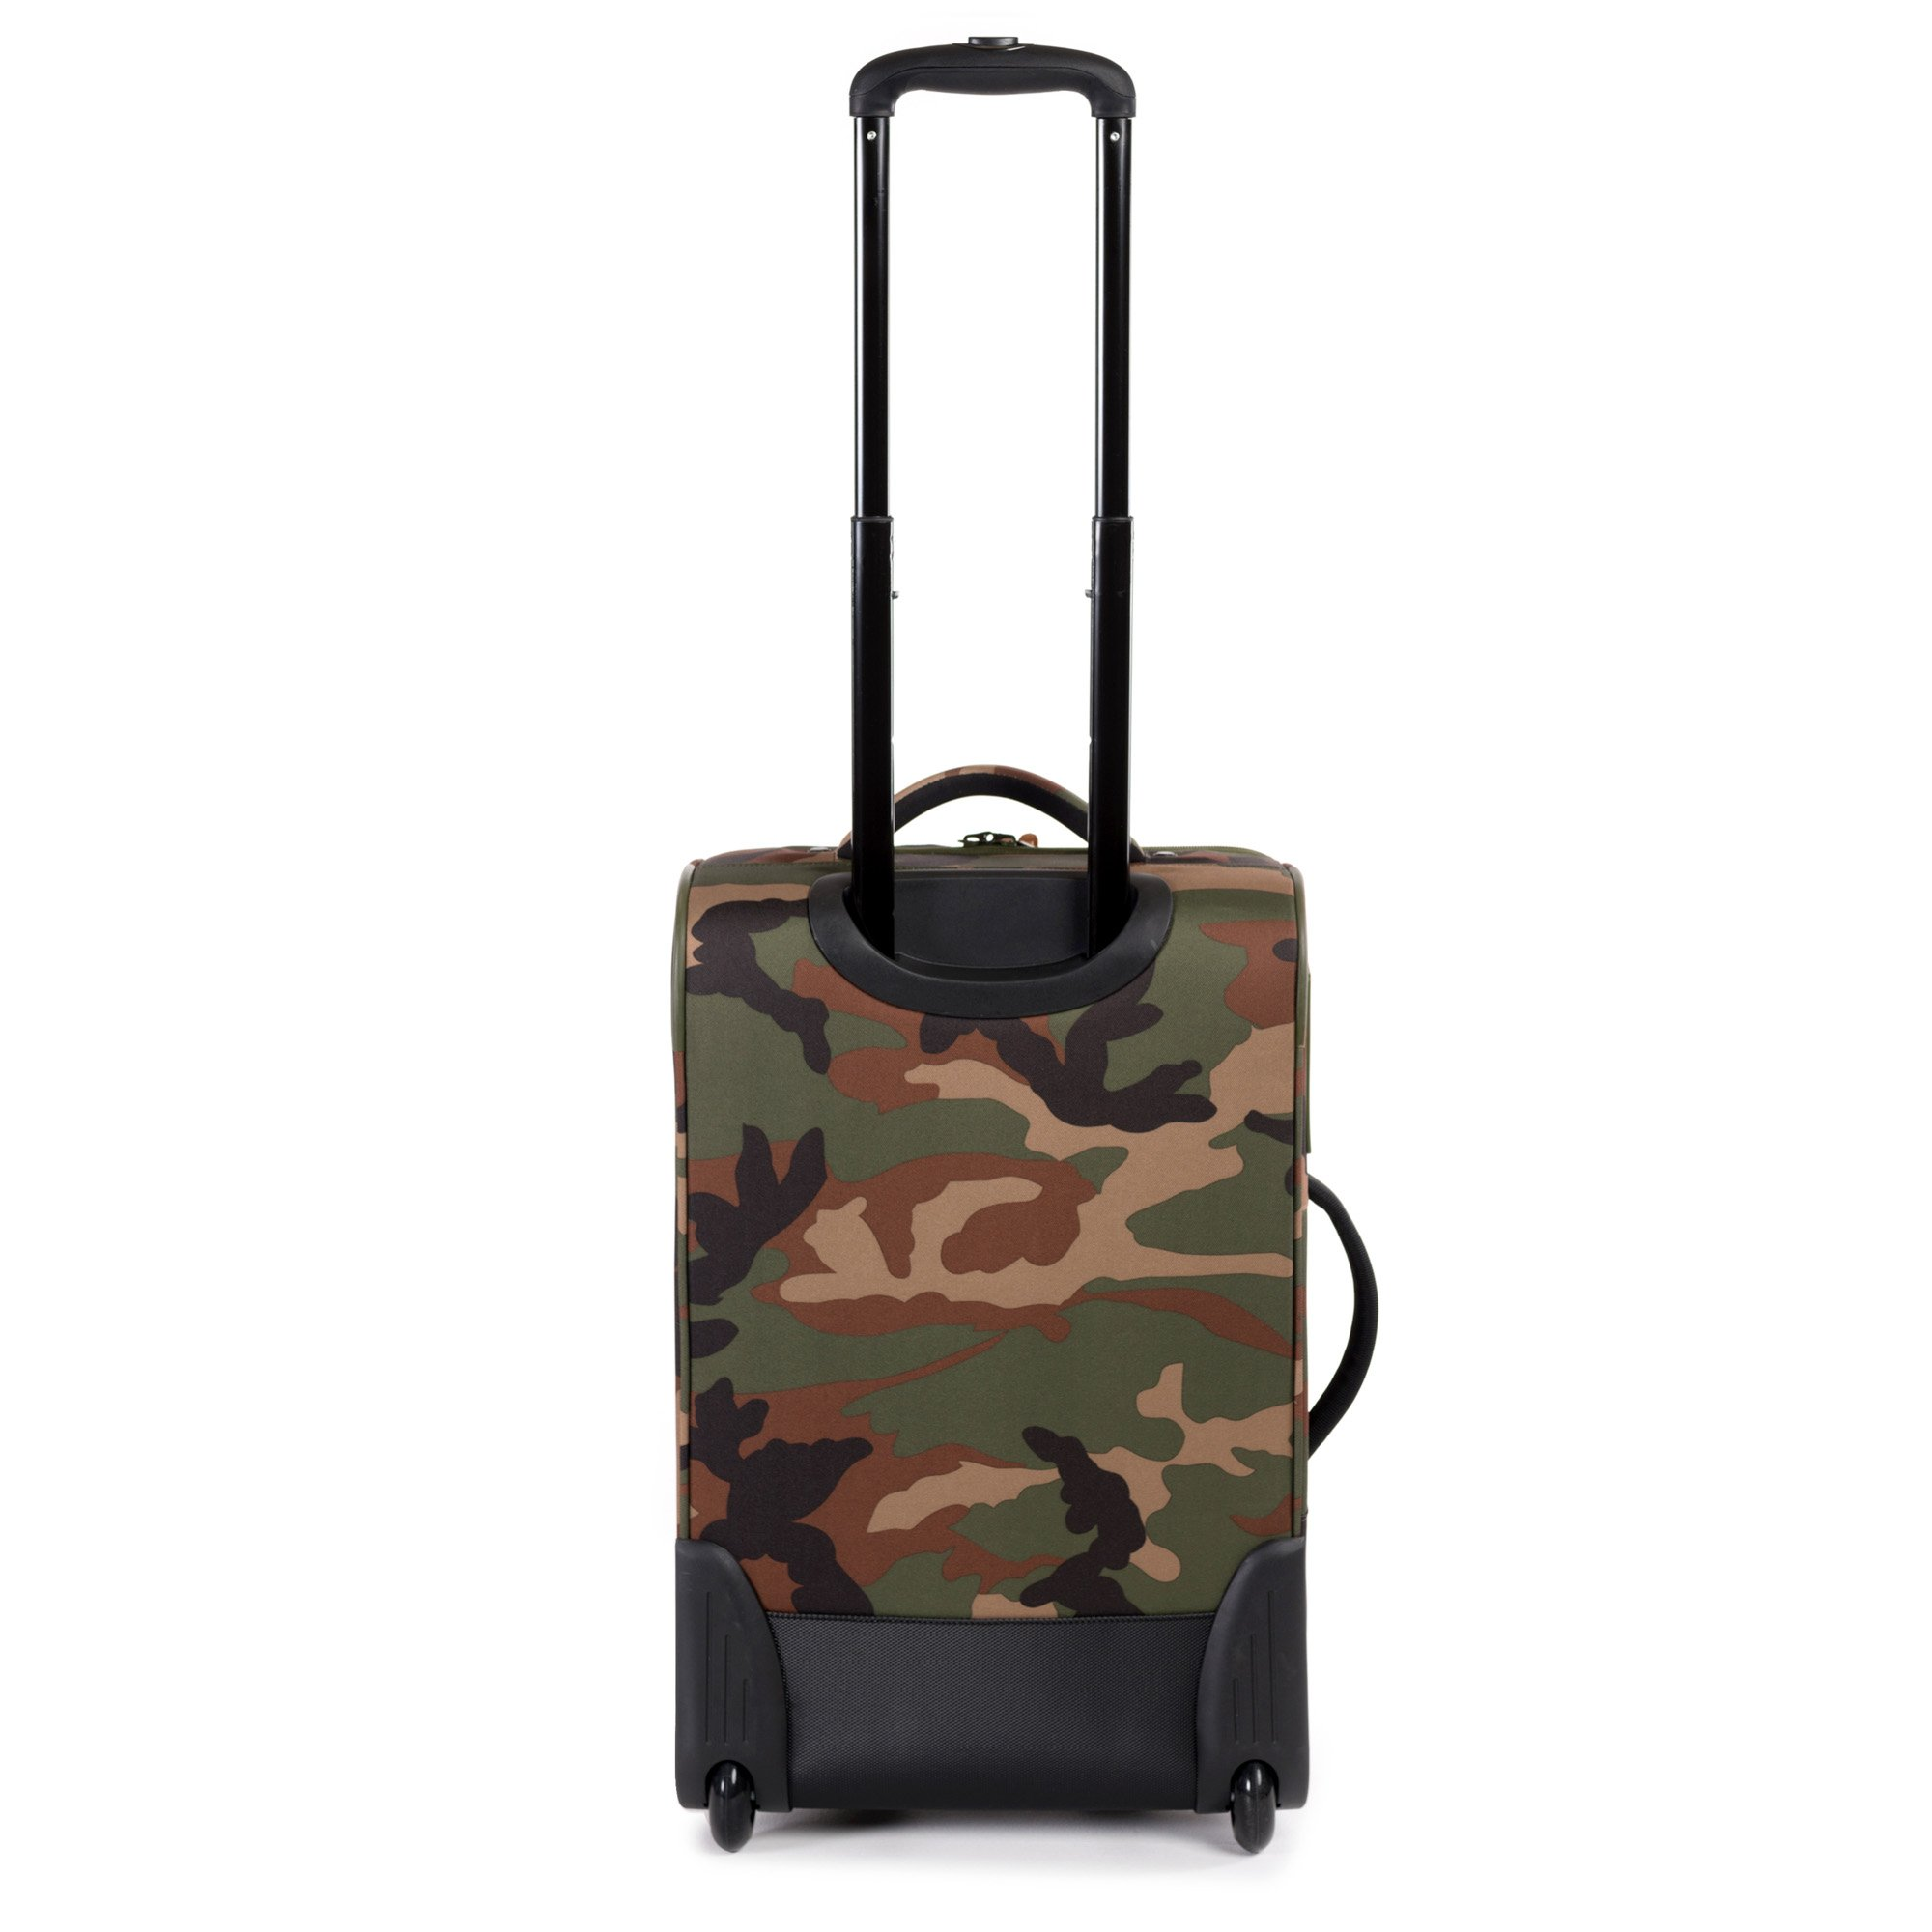 Herschel Supply Co. Campaign, Woodland Camo, One Size by Herschel Supply Co. (Image #4)